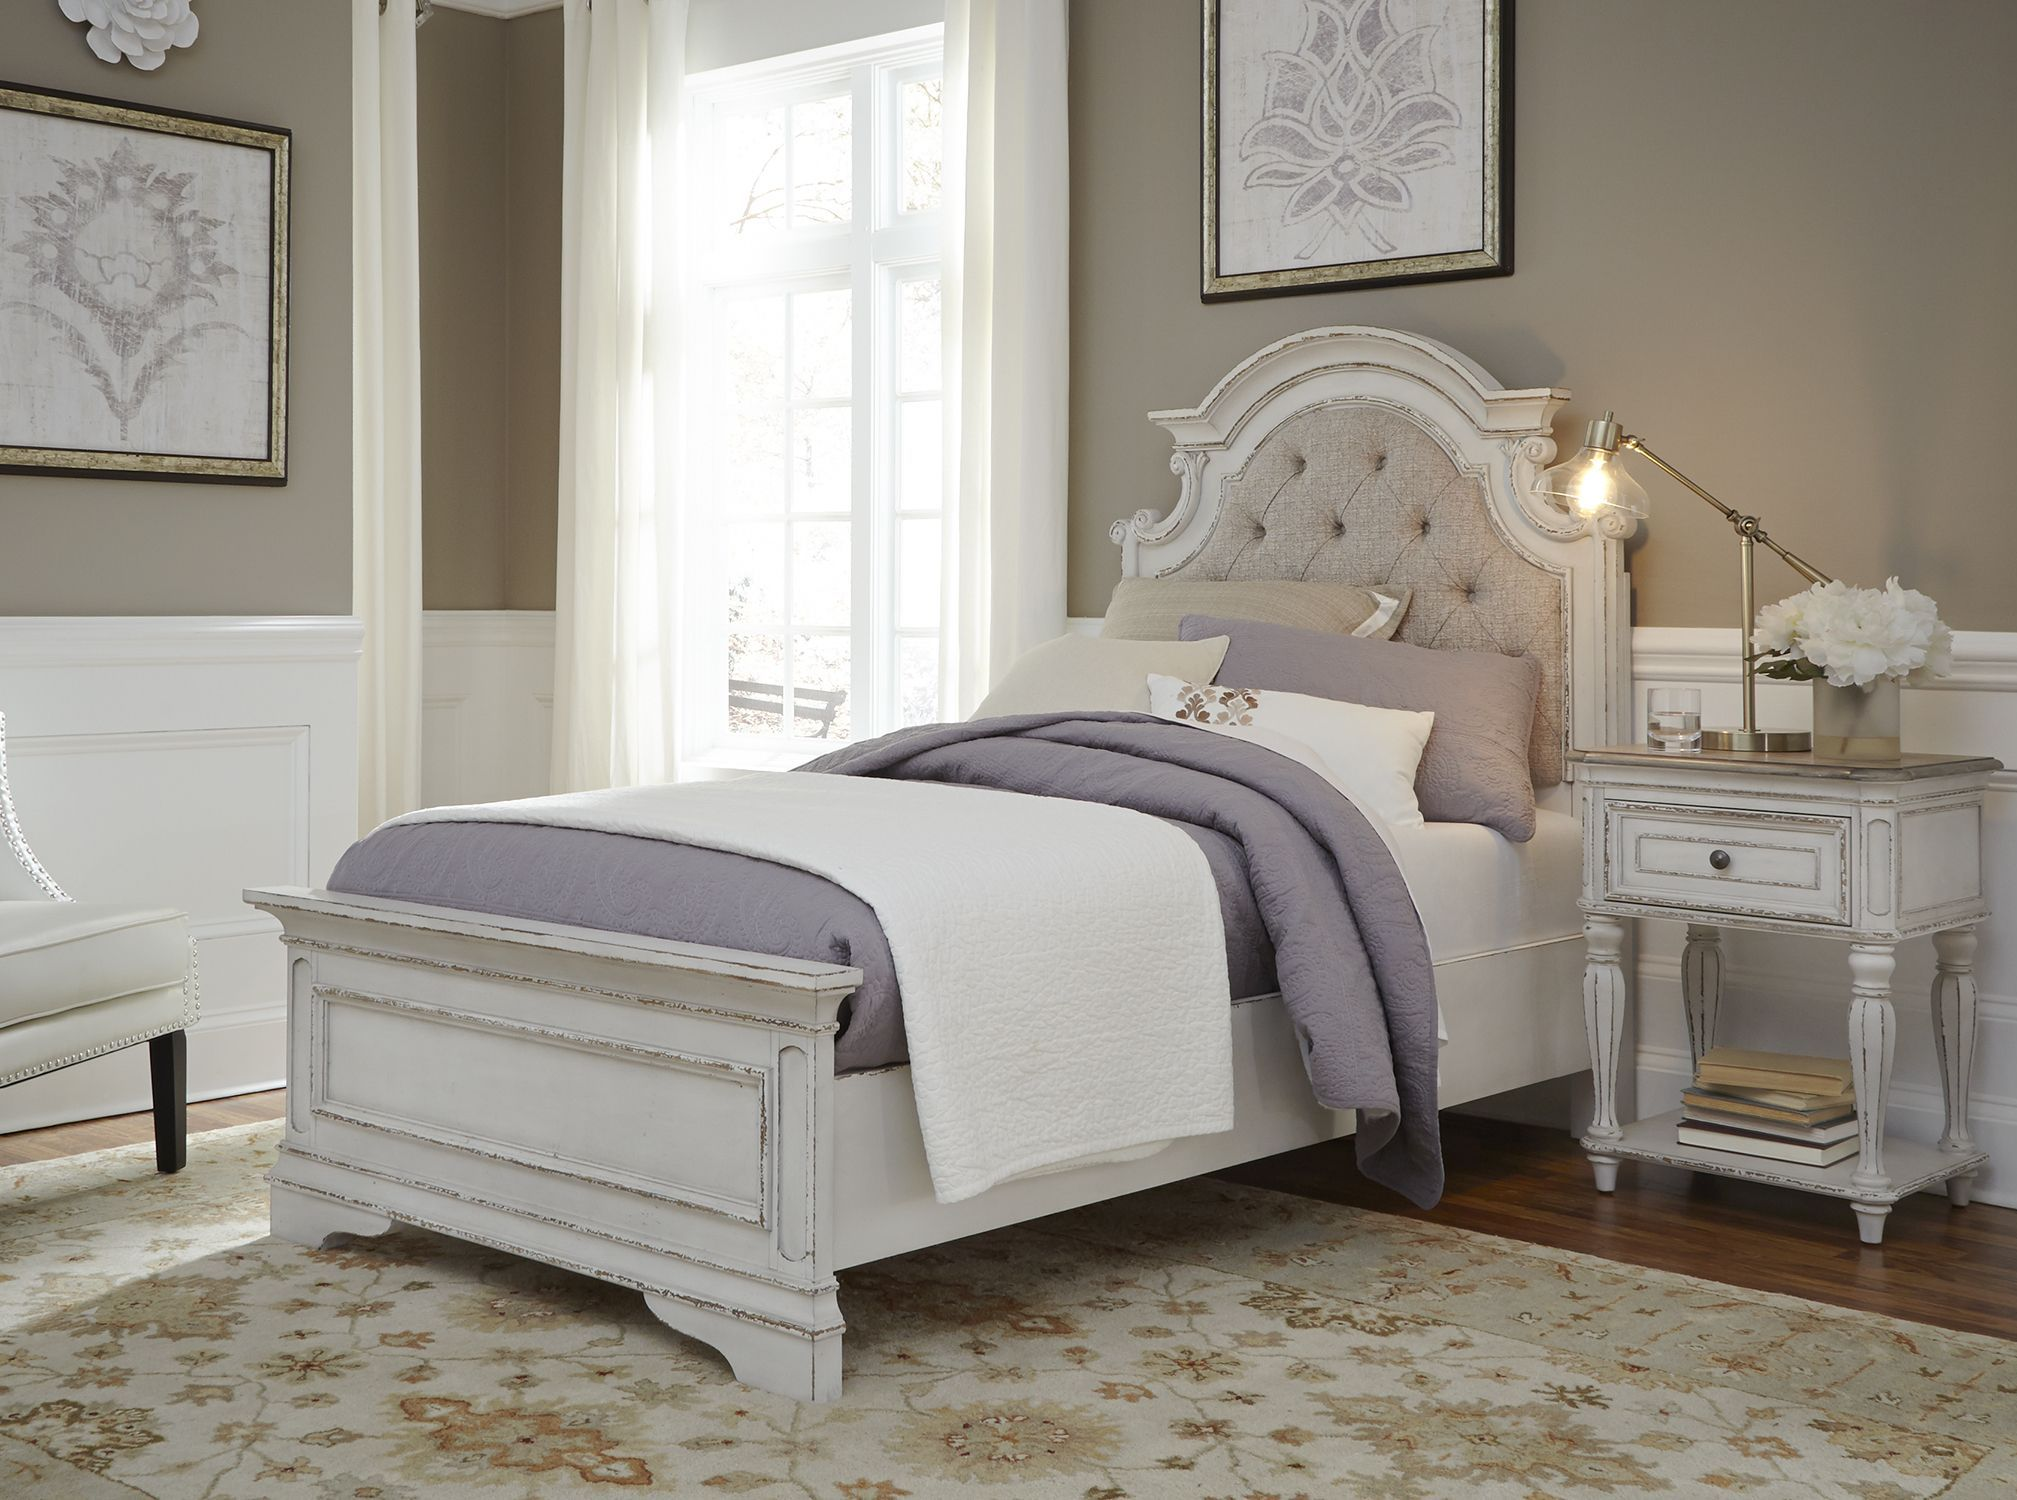 Magnolia Manor Antique White Youth Upholstered Panel Bedroom Set